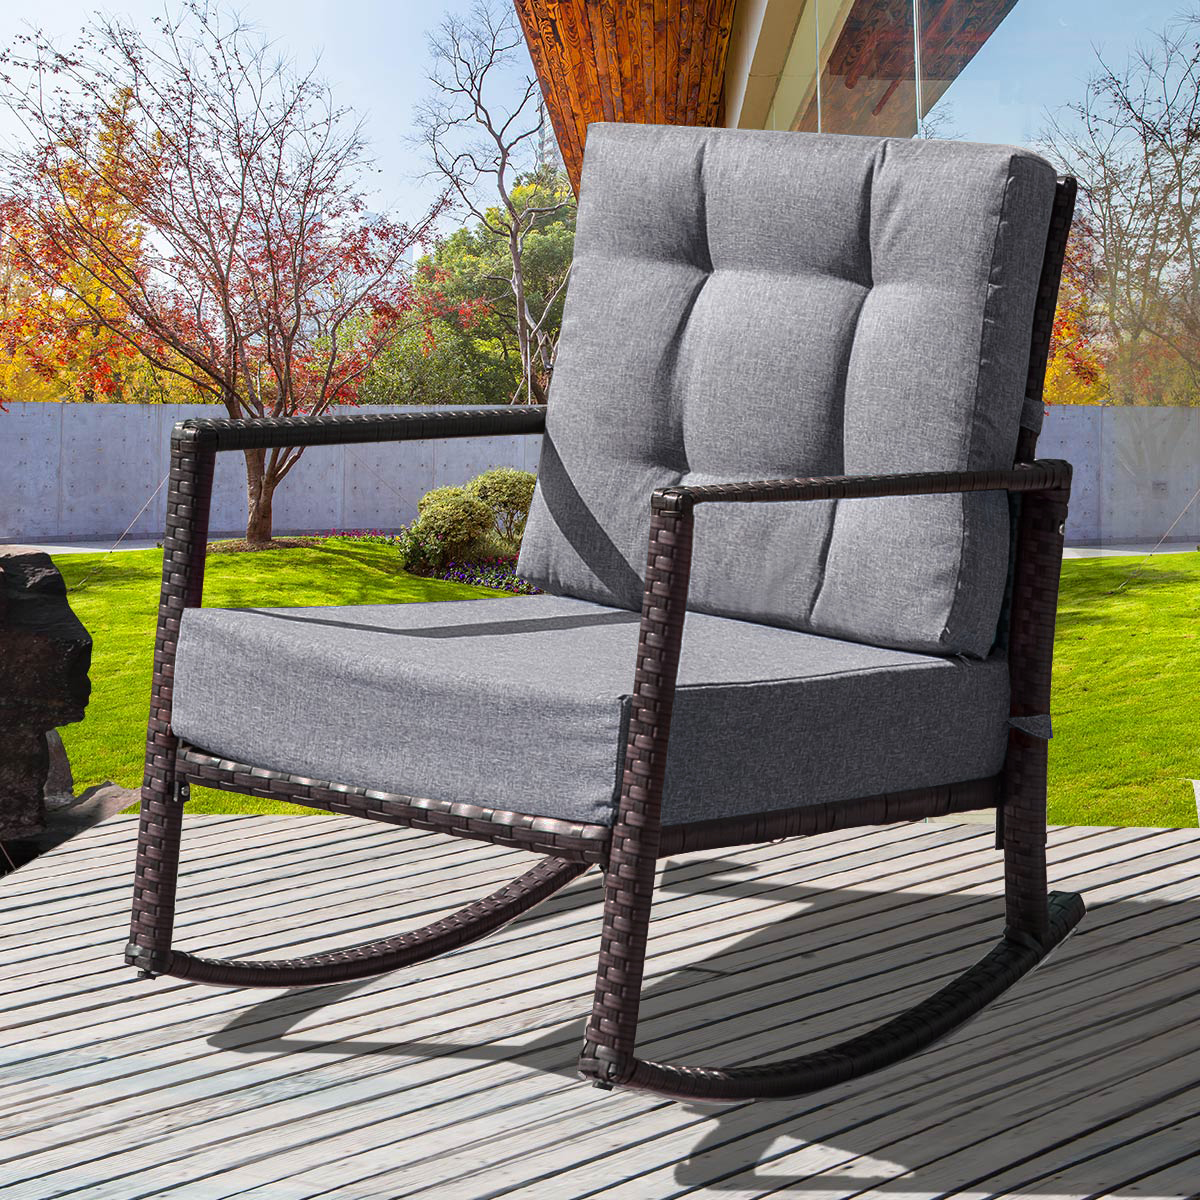 wicker patio rocking chair outdoor patio furniture conversation chairs metal rocking outdoors chair outdoor rocking chair sets for yard garden